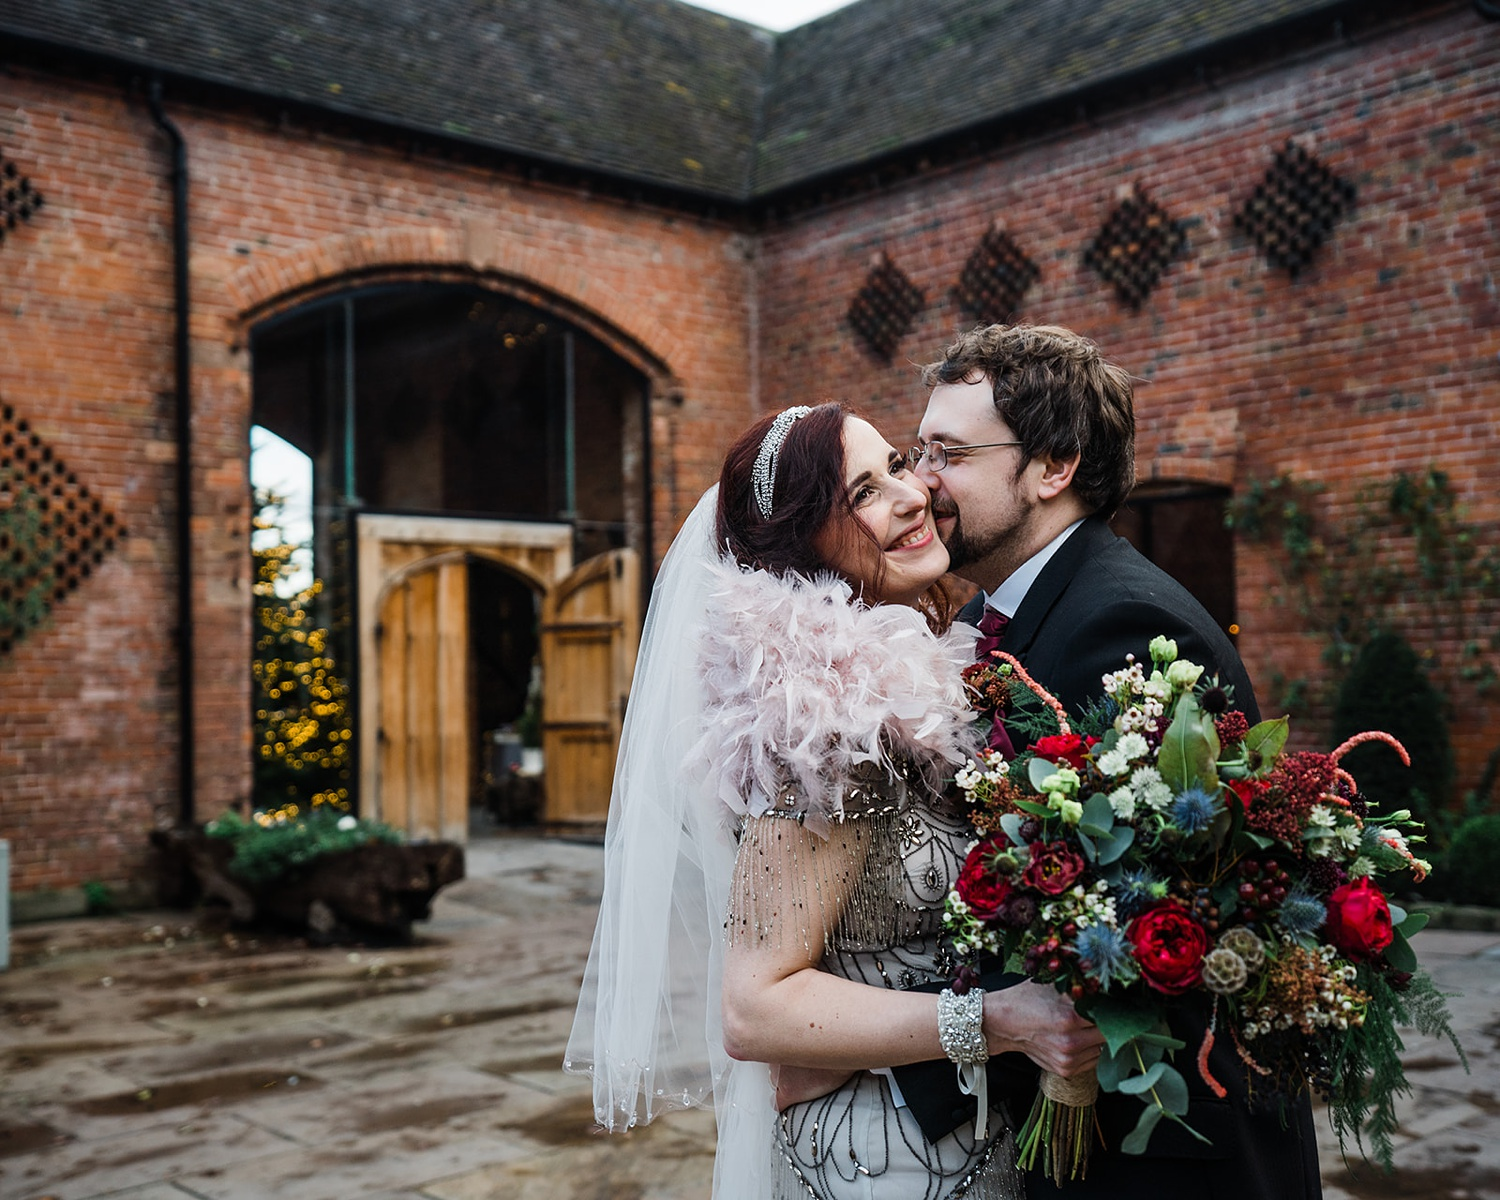 Groom kissing bride on cheek Shustoke Barn wedding